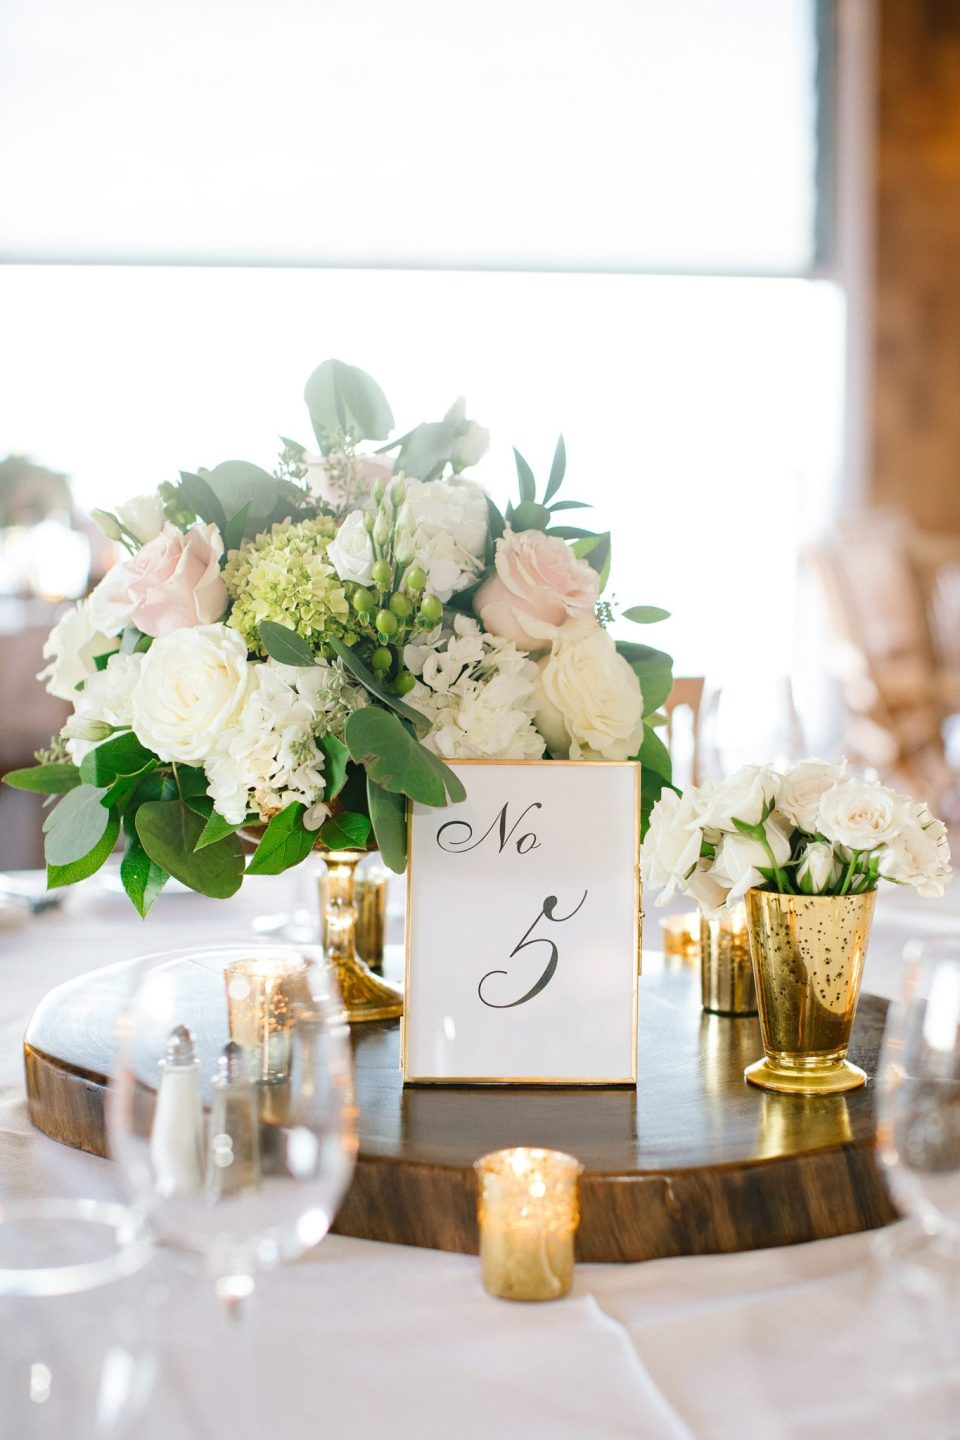 wedding centerpieces with rustic design photographed by Ashley Mac Photographs